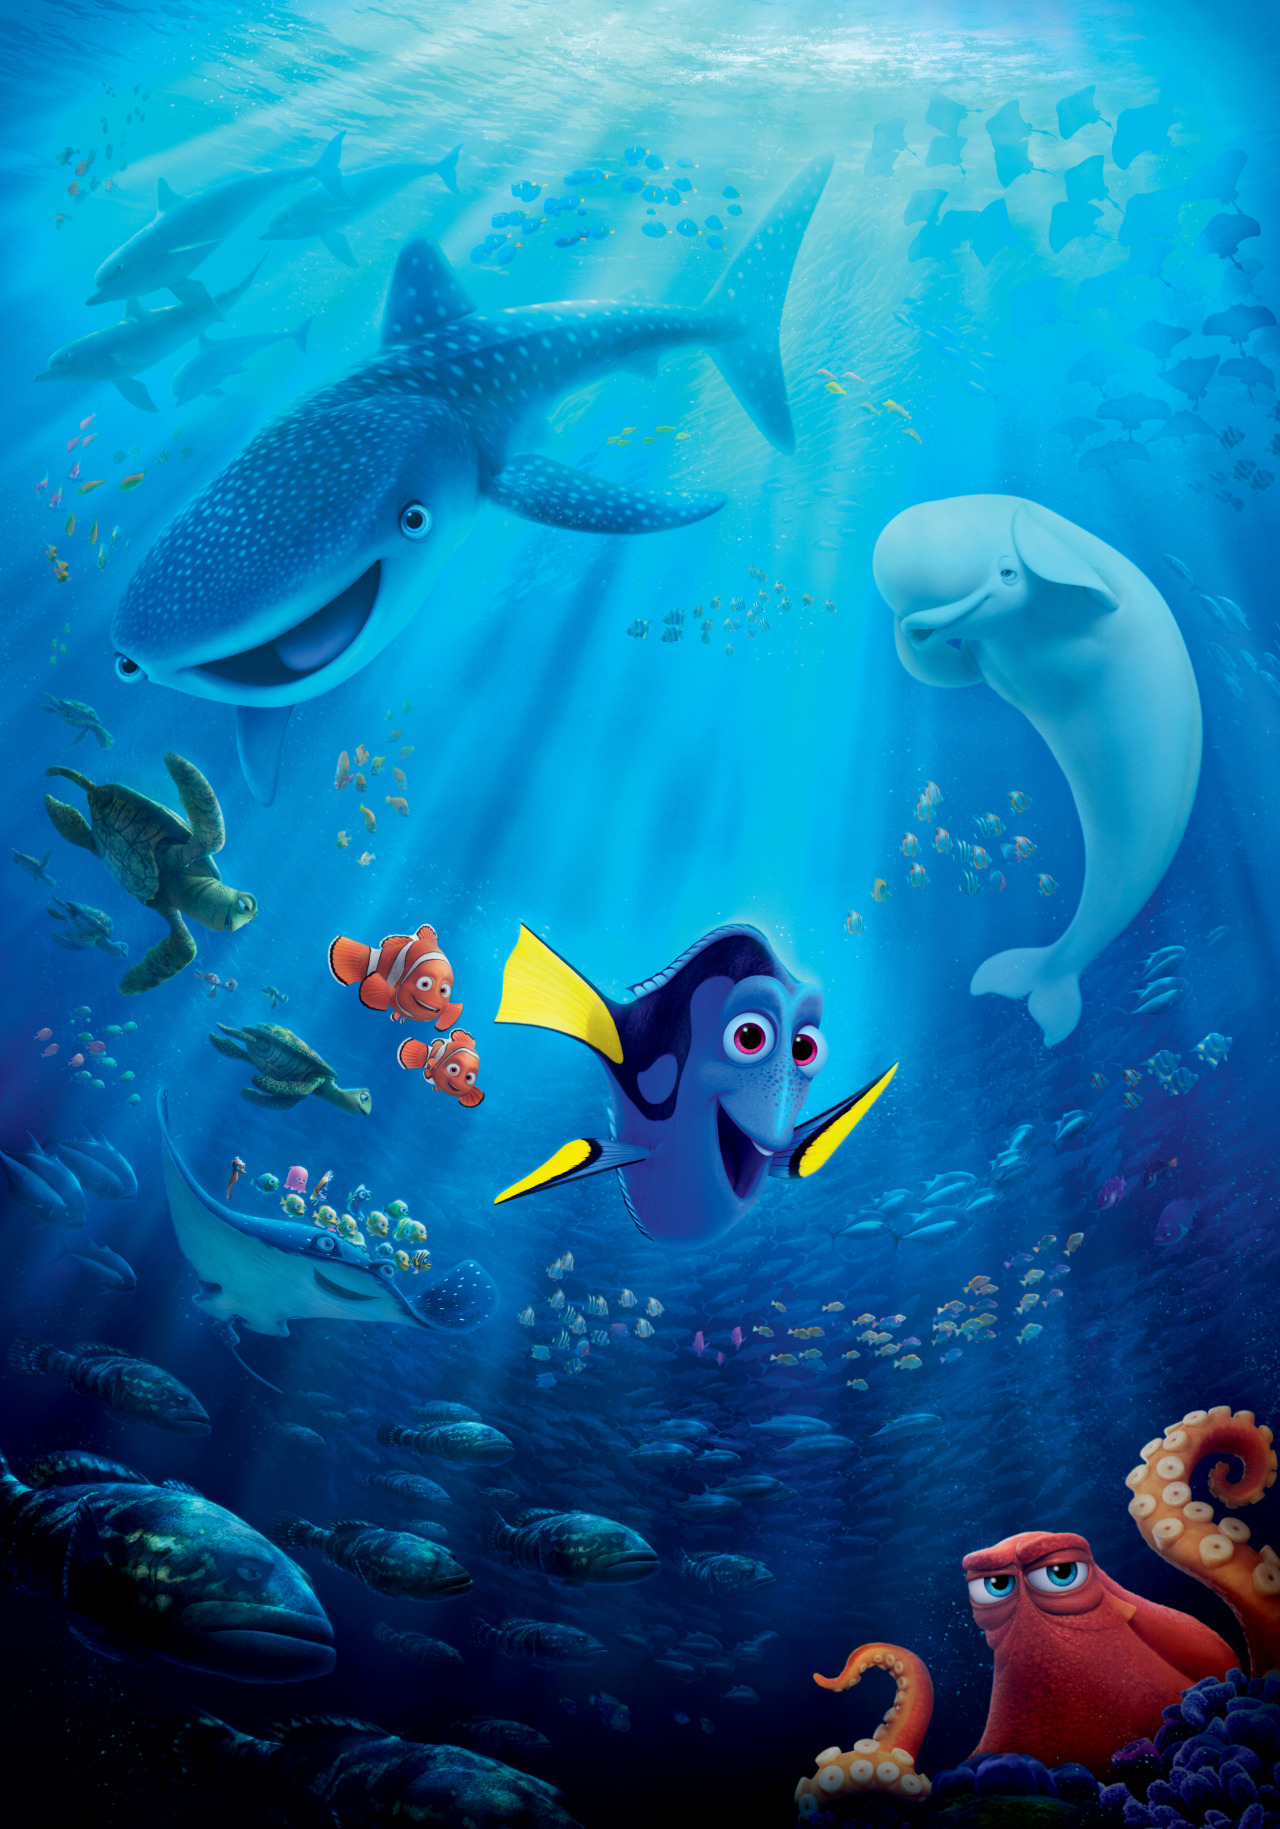 Finding Dory Wallpapers High Quality | Download Free